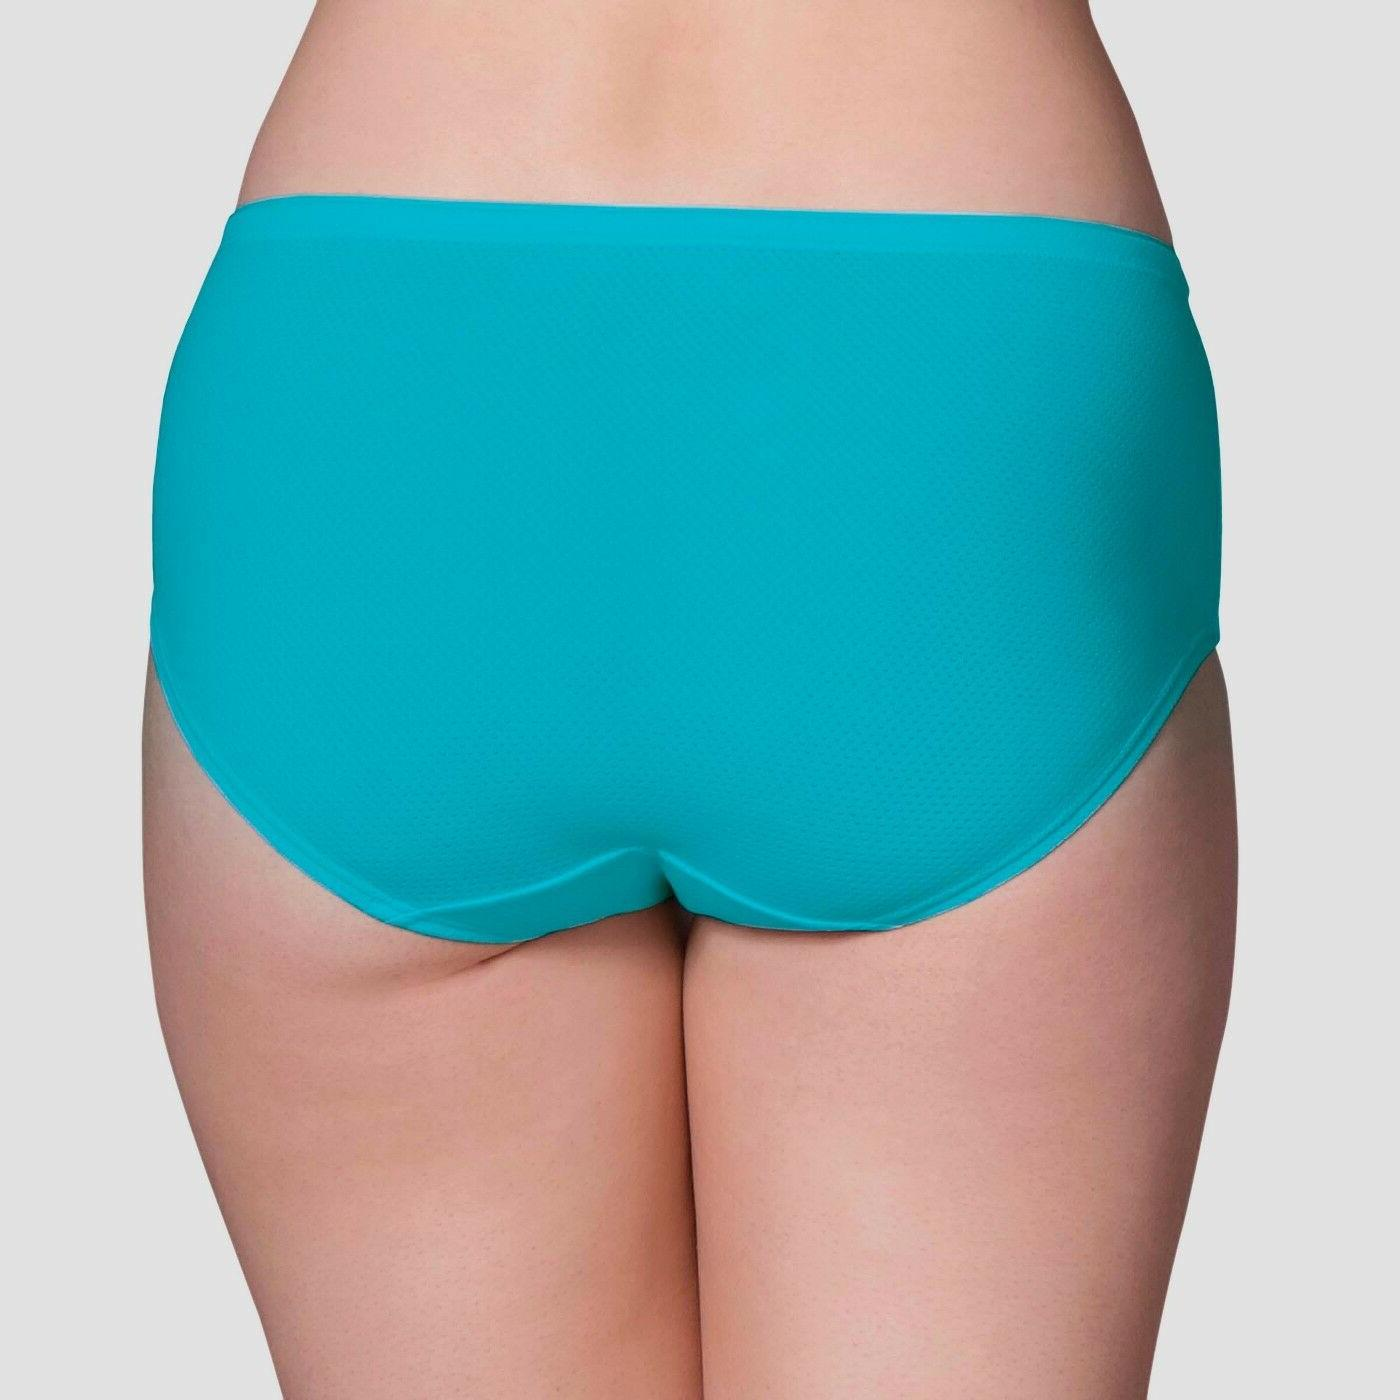 Fruit of Women's Low Briefs 4-Pack Assorted Colors